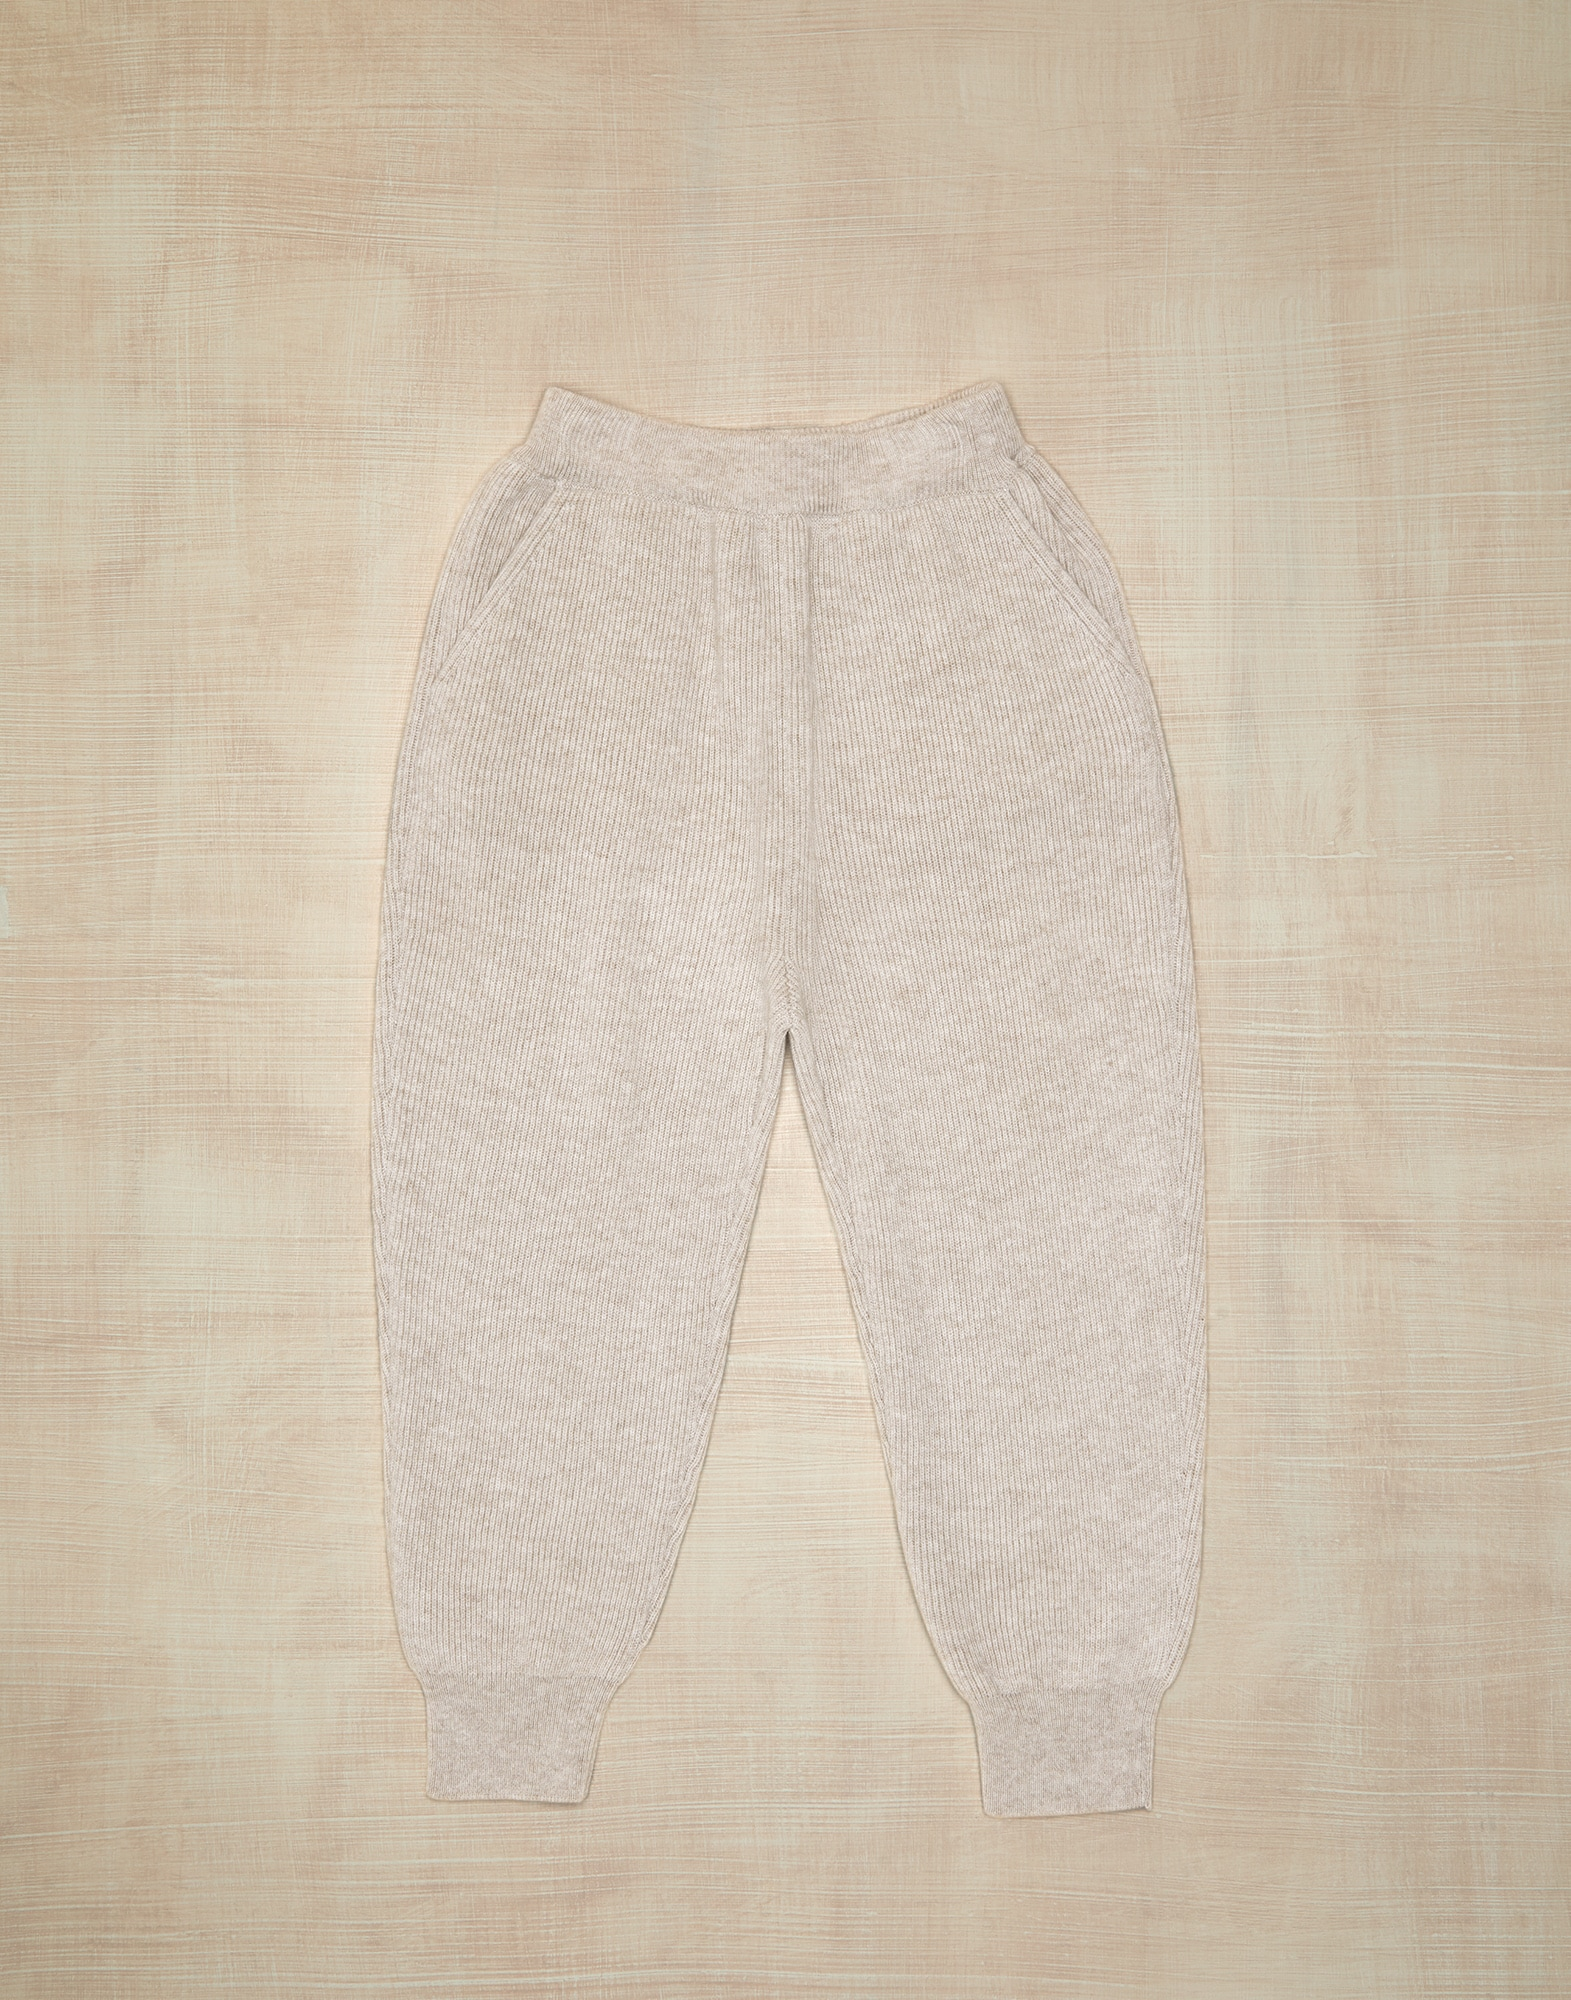 Trousers Oyster Girl 1 - Brunello Cucinelli